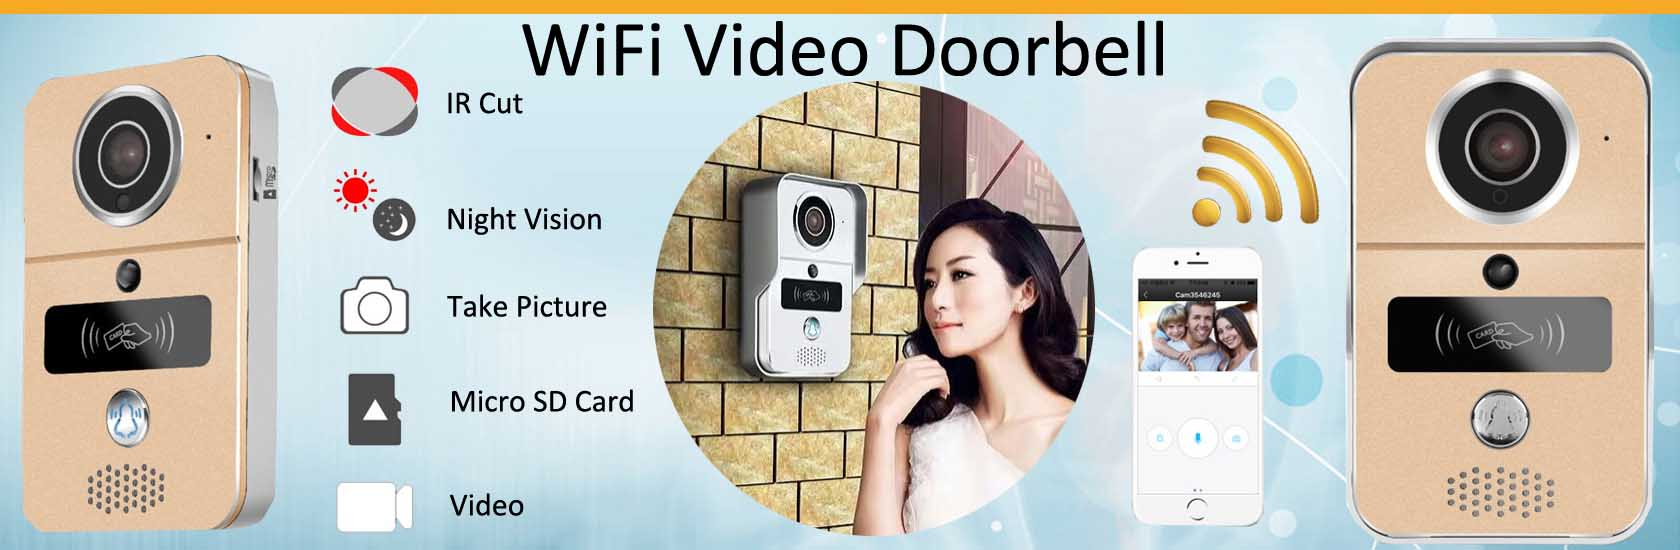 5 WiFi Video Doorbell VF-DB04